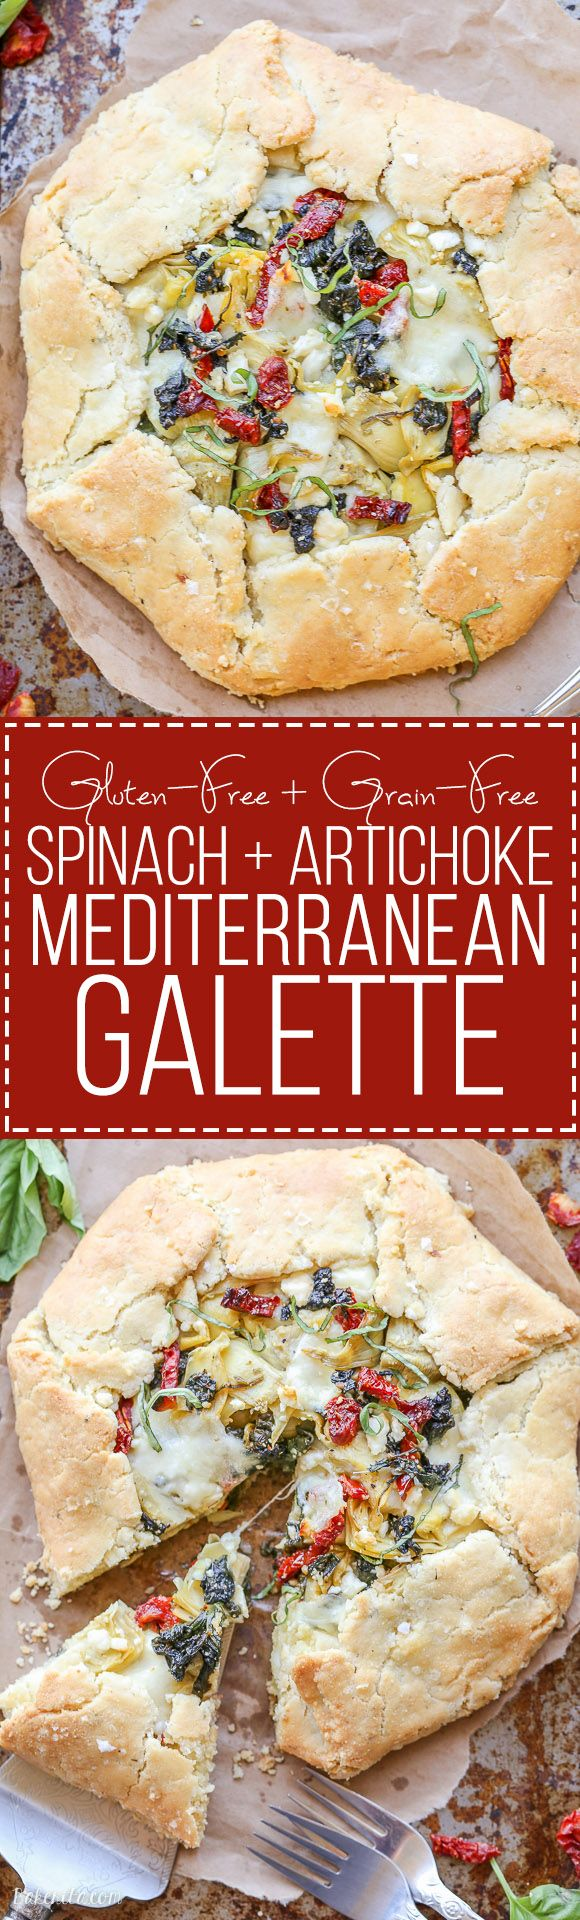 This Spinach + Artichoke Mediterranean Galette has sun-dried tomatoes, artichoke hearts, feta cheese, and gooey mozzarella tucked into a flaky gluten-free and grain-free crust. Pair with a side salad for the perfect lunch or dinner.